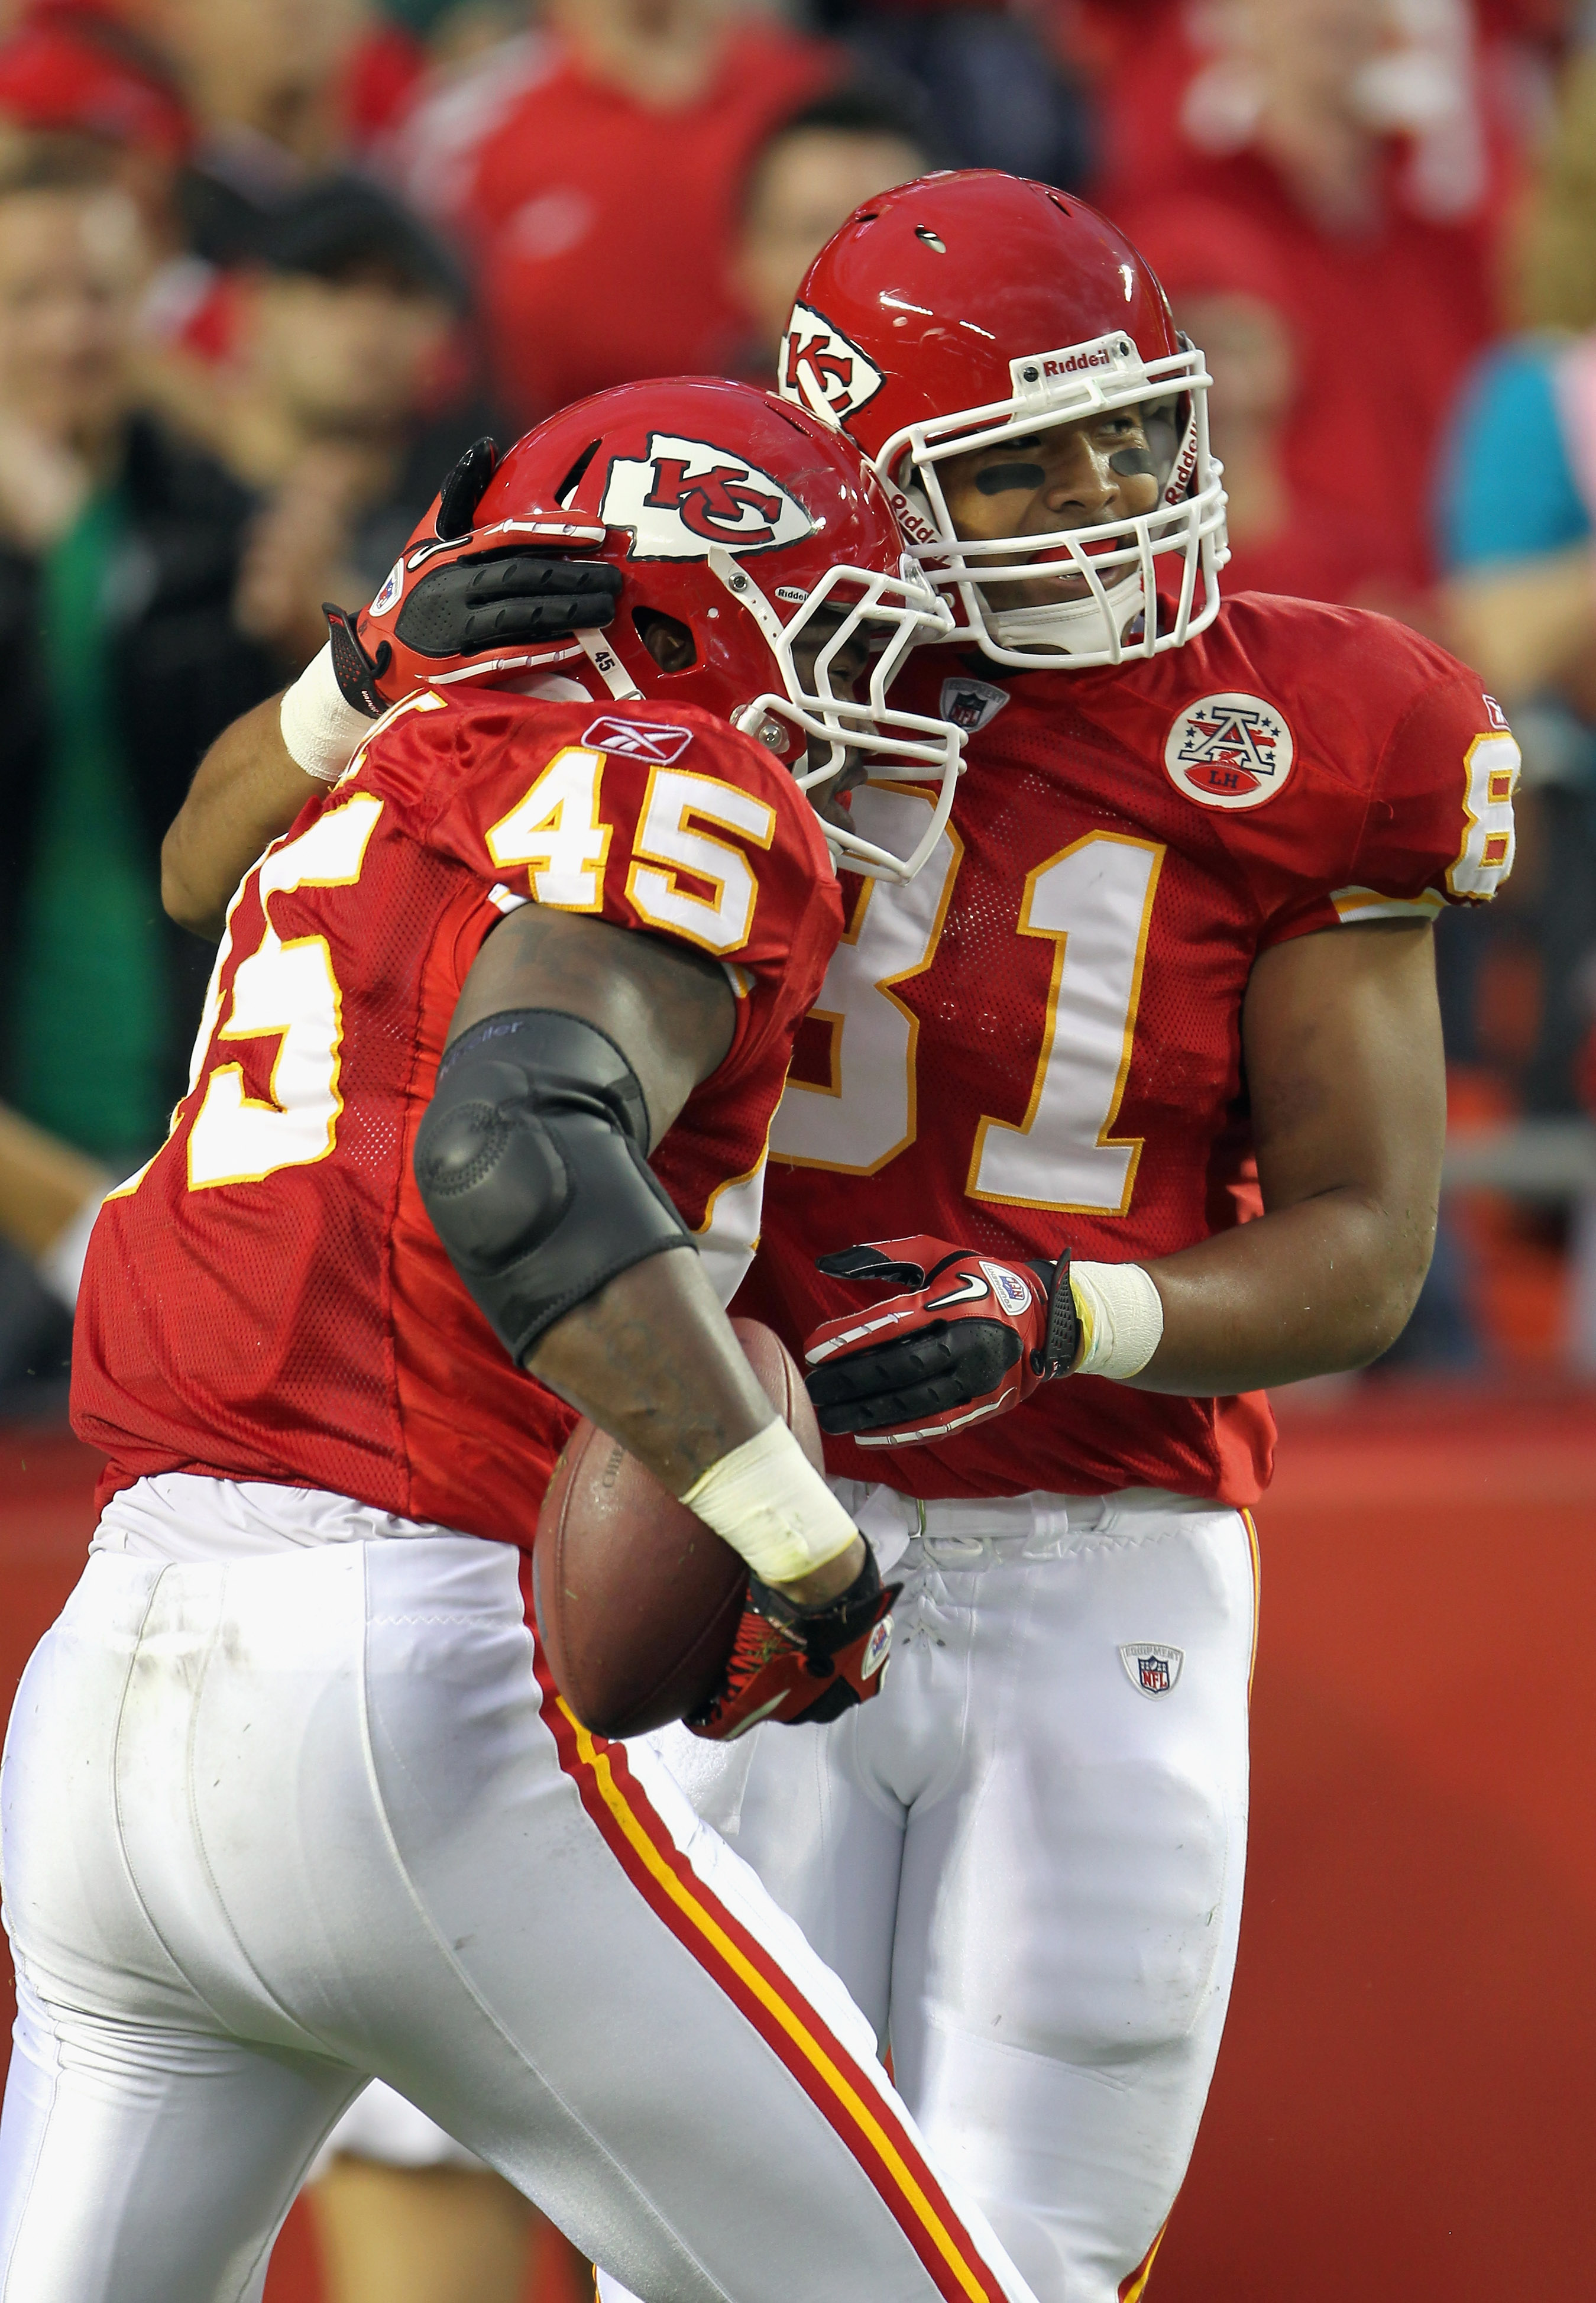 KANSAS CITY, MO - SEPTEMBER 02:  Receiver Tony Moeaki #81 of the Kansas City Chiefs congratulates Leonard Pope #45 after Pope caught a pass for a touchdown during the game against the Green Bay Packers on September 2, 2010 at Arrowhead Stadium in Kansas C